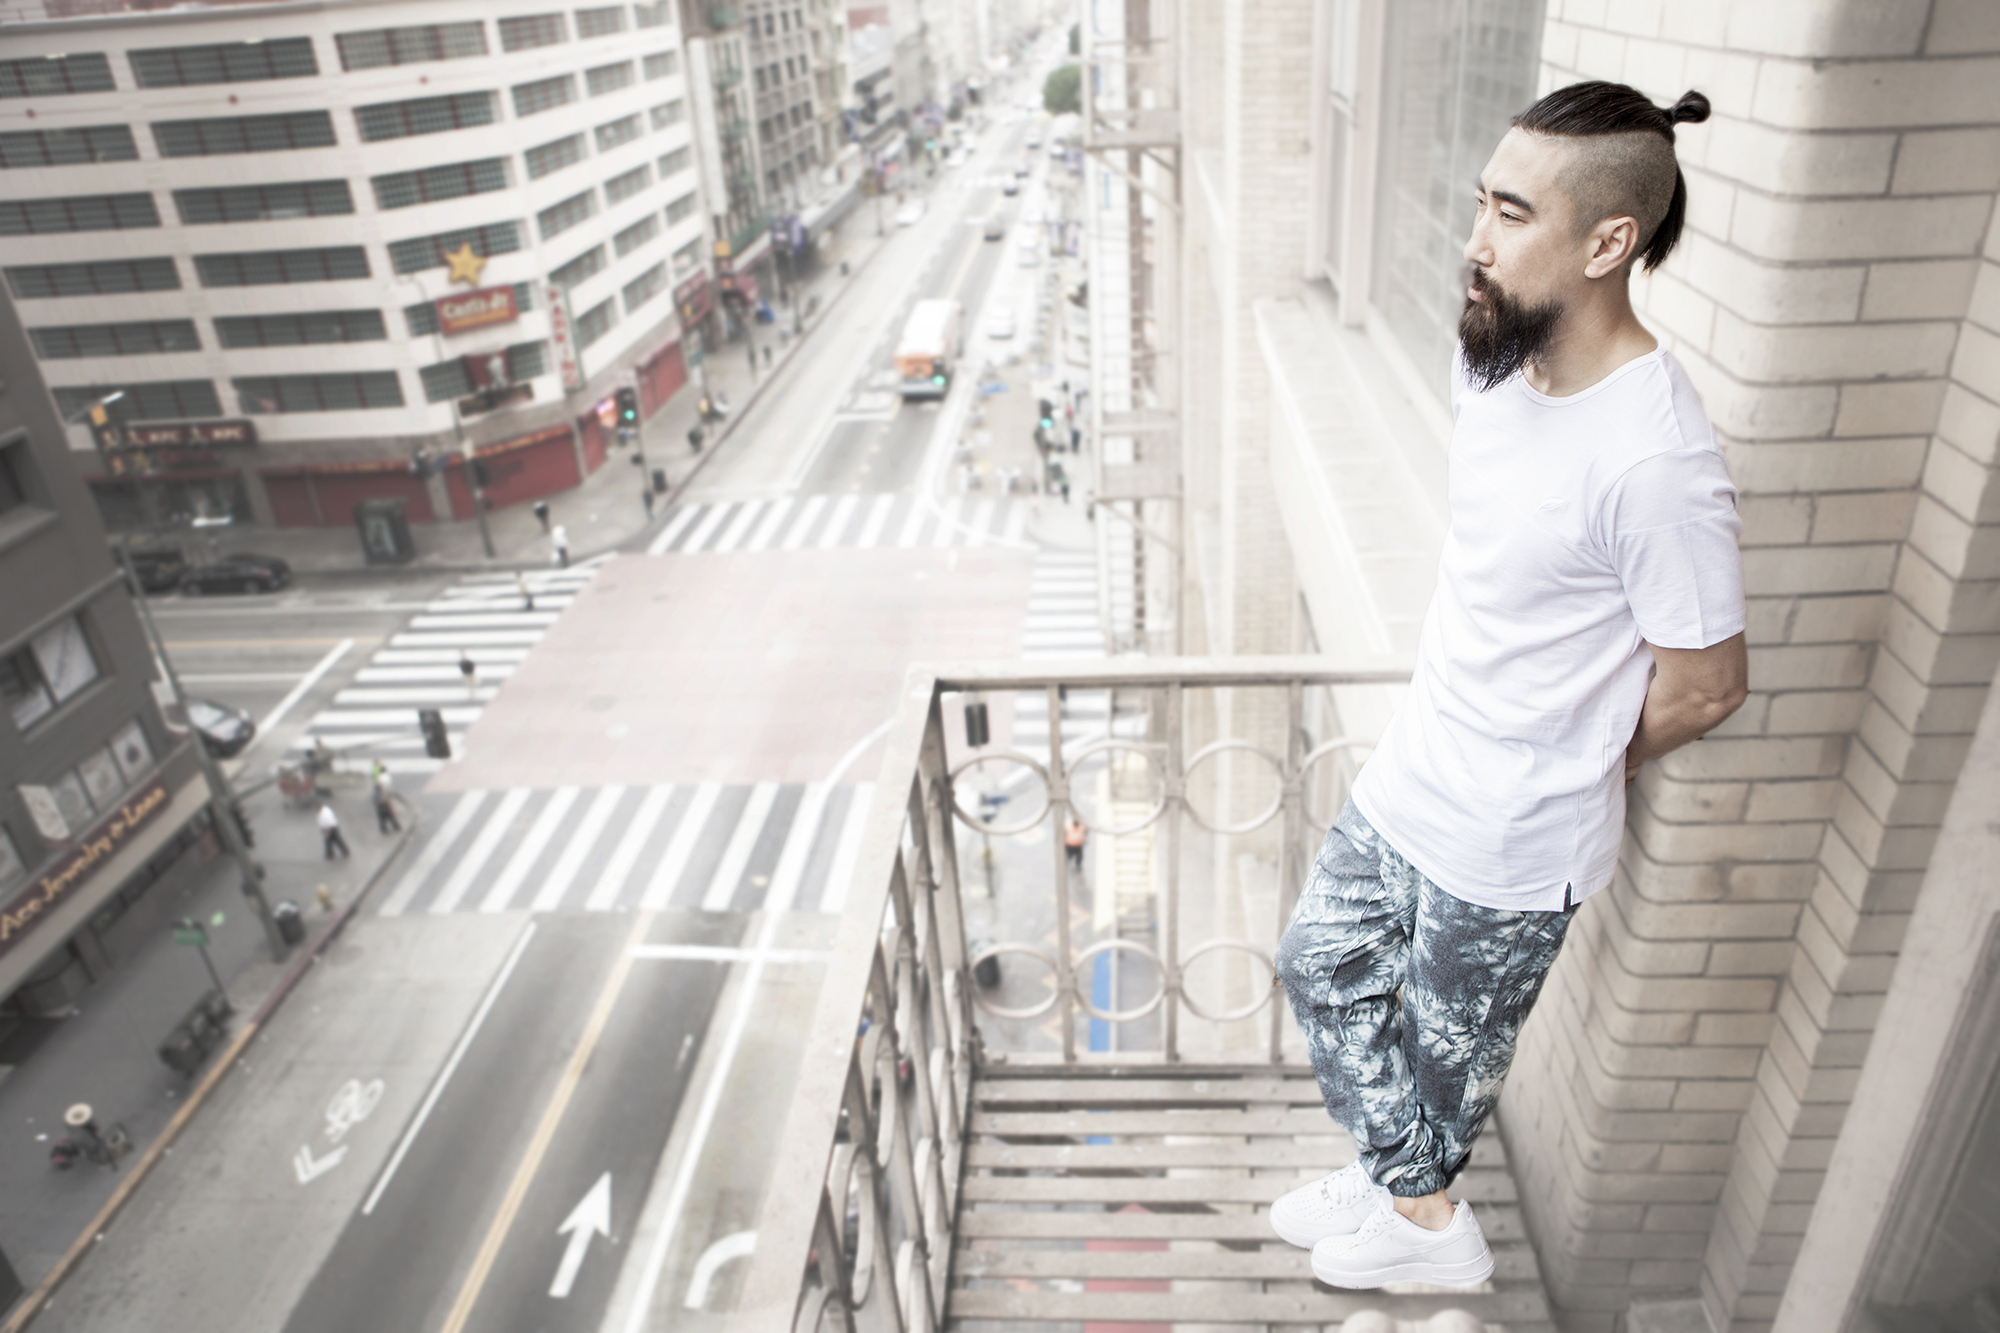 justfeng ryan feng quest crew publishbrand photography photographer fashion